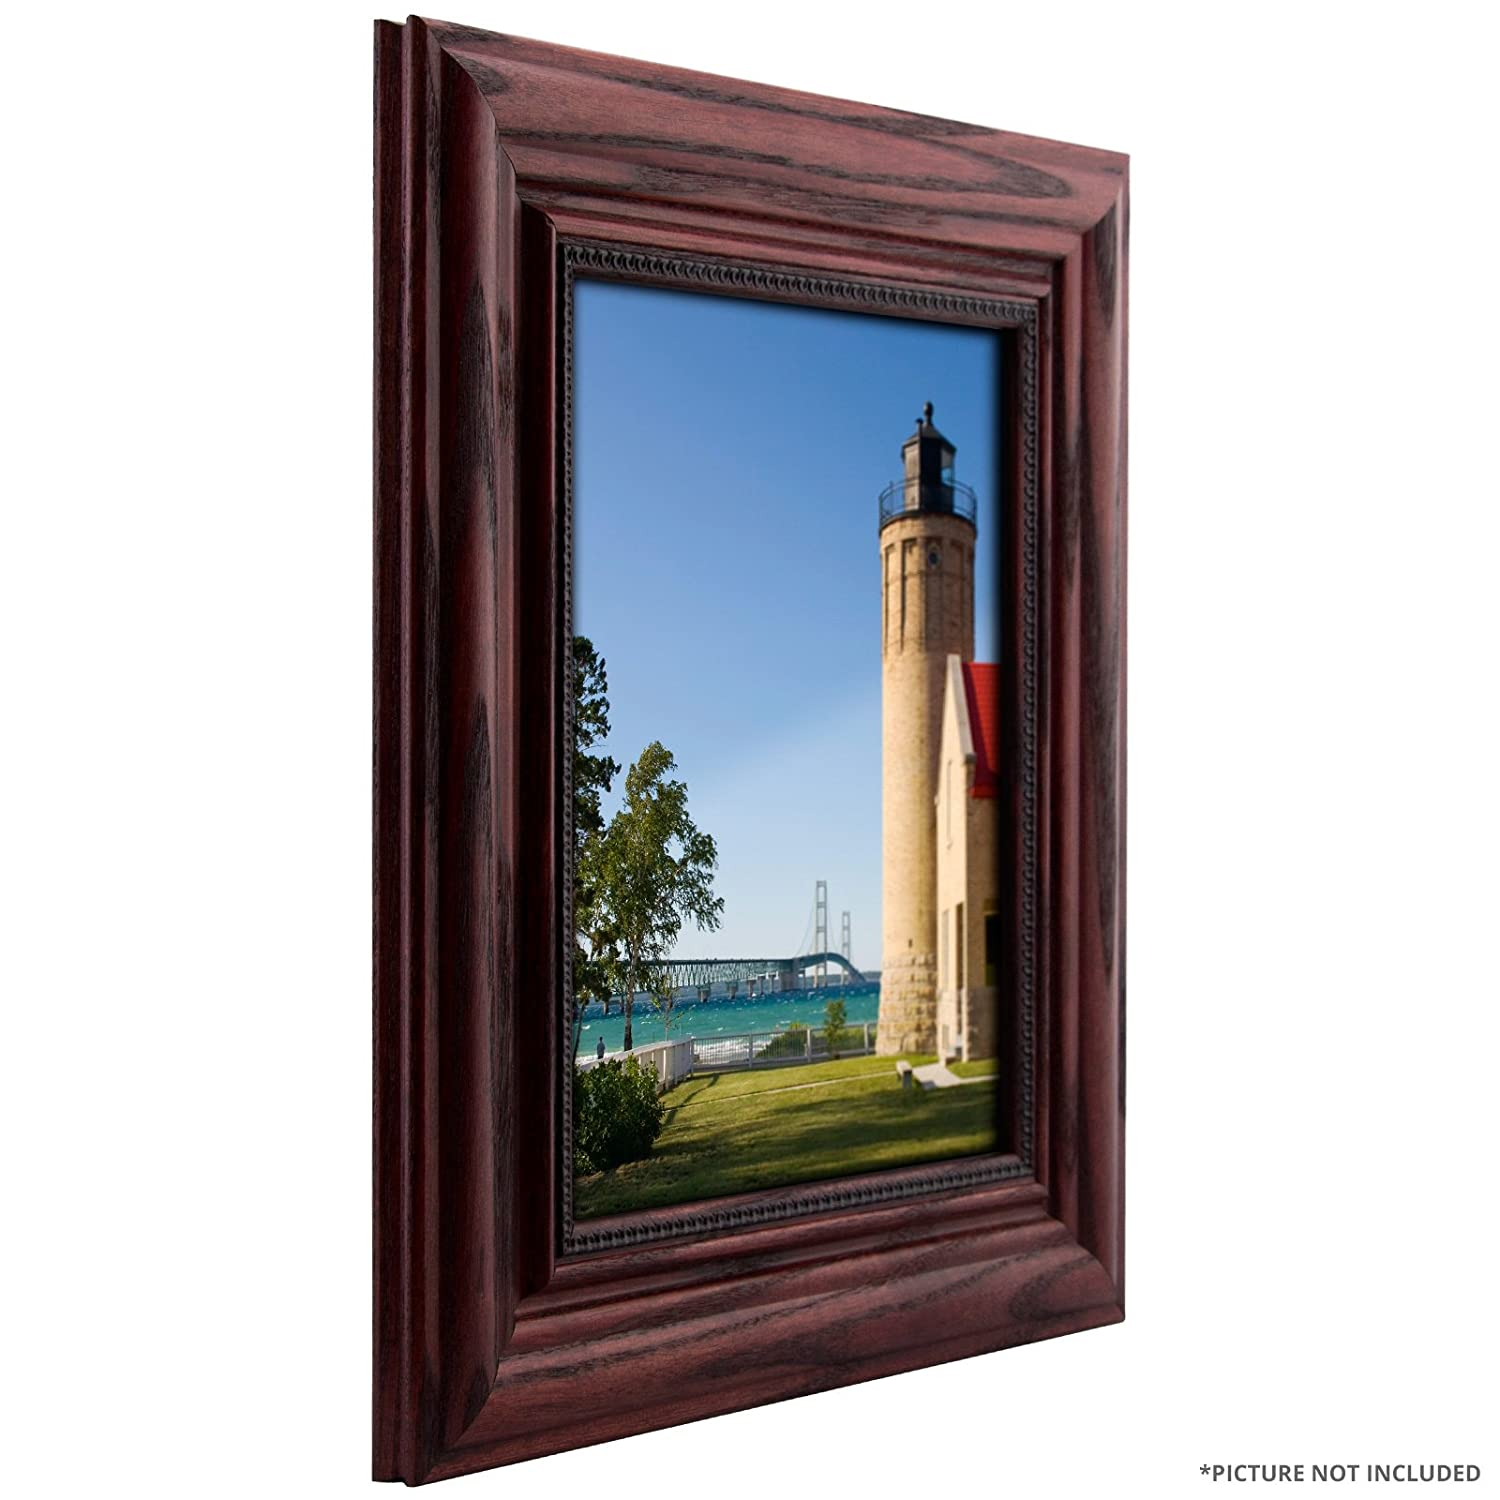 Amazon craig frames 15177483251 24 by 36 inch picture frame amazon craig frames 15177483251 24 by 36 inch picture frame solid wood 225 inch wide cherry poster frames jeuxipadfo Gallery